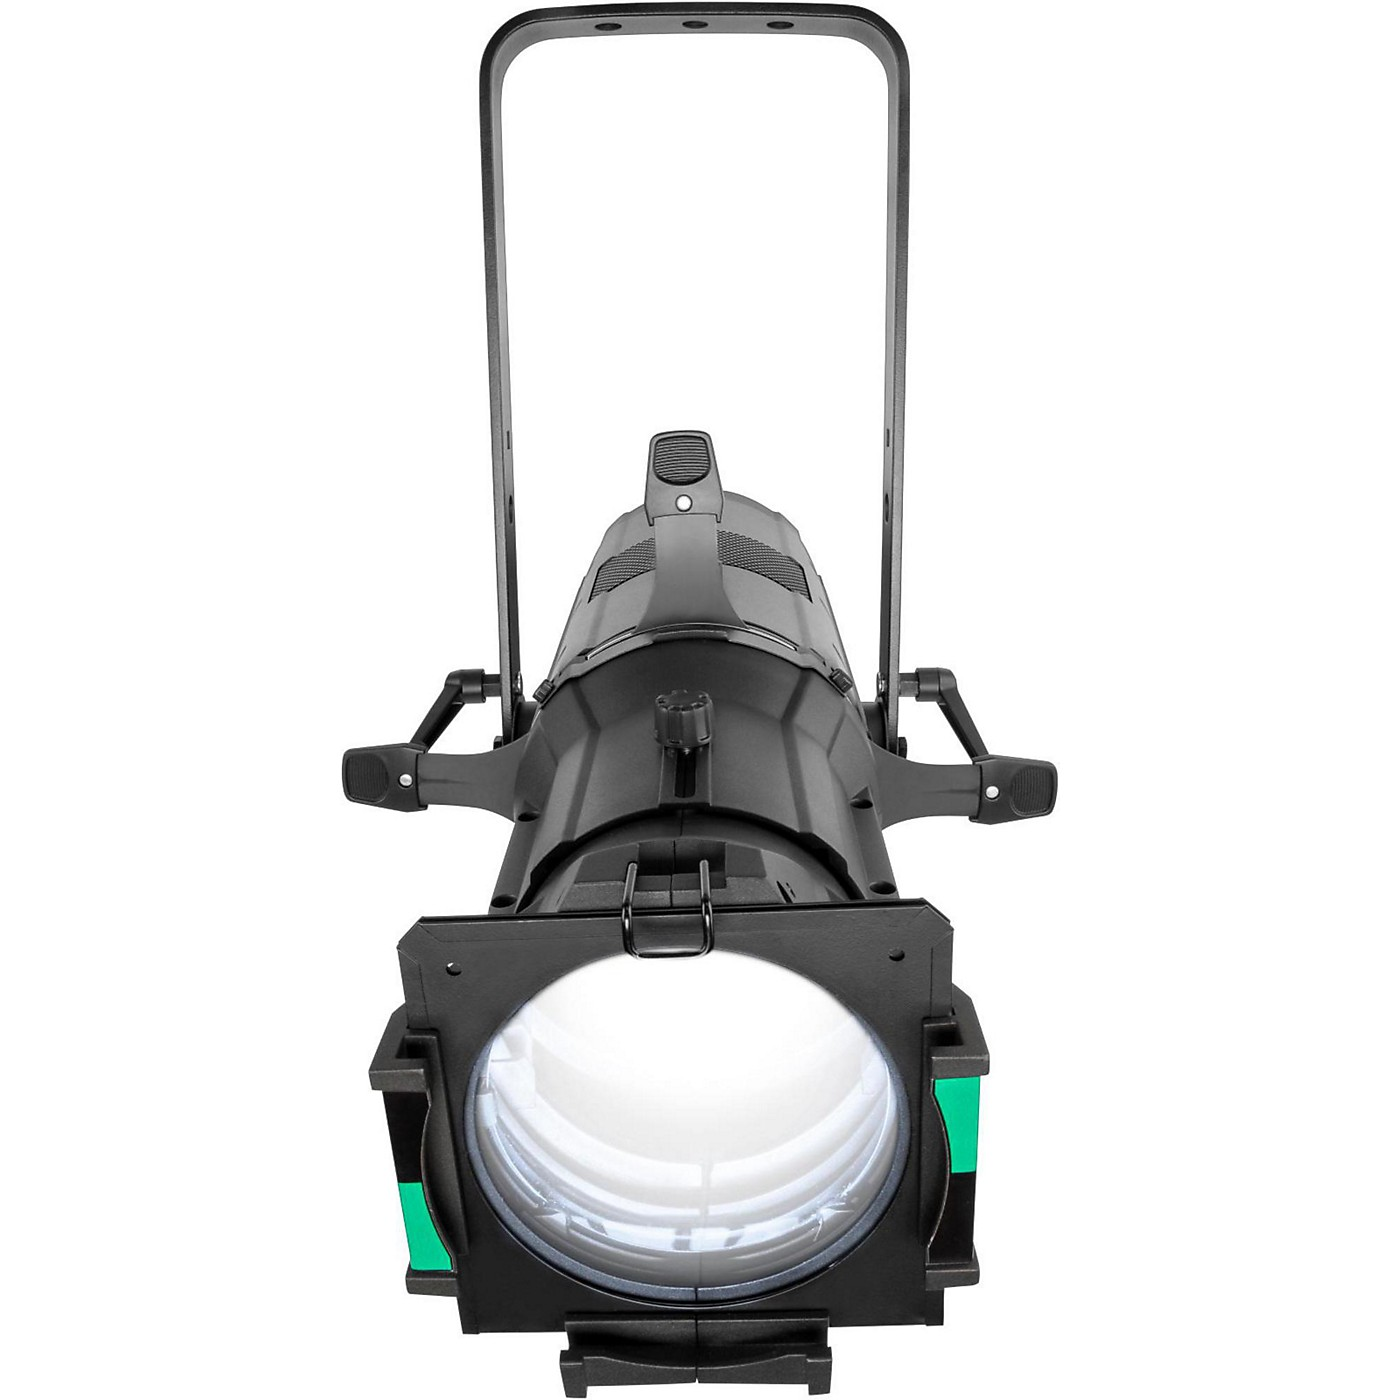 CHAUVET Professional Ovation E-260CW 260W LED Ellipsoidal Spotlight thumbnail